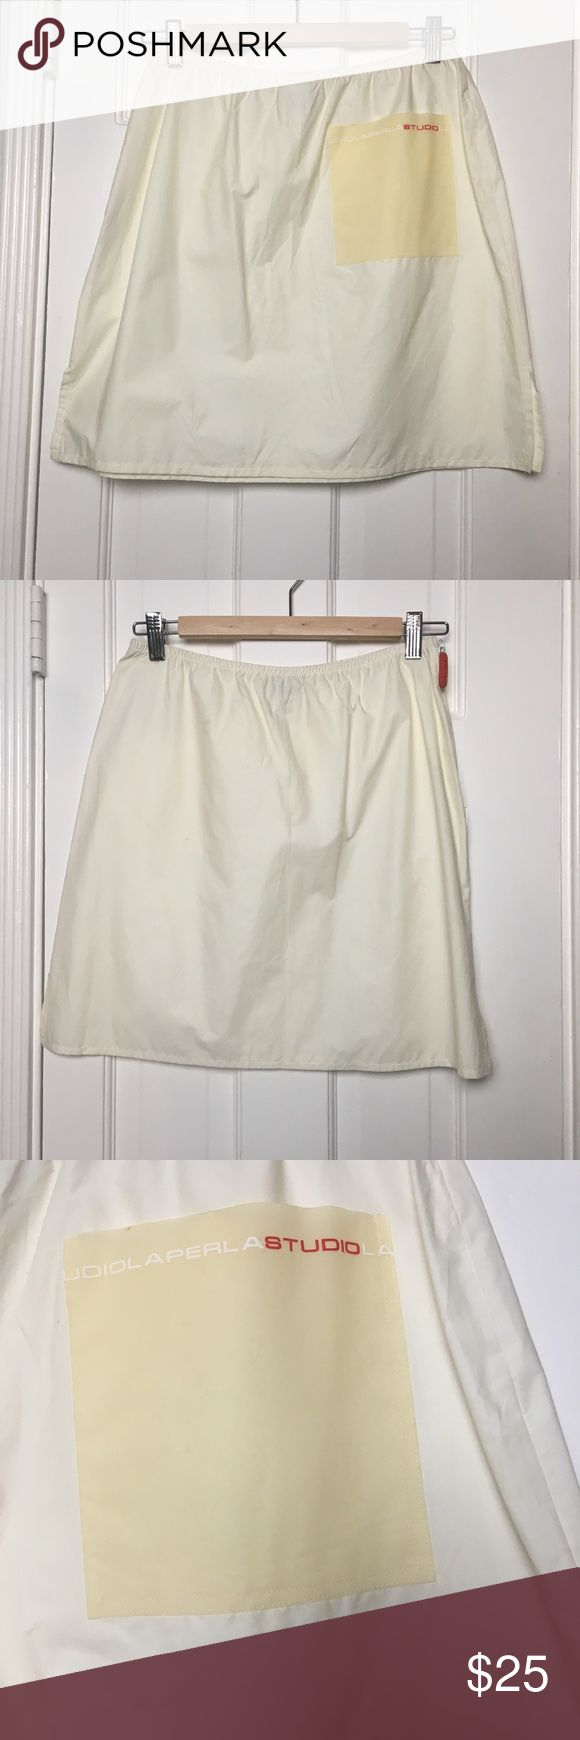 LA Perla Studio Mini Skirt sz 8 LA Perla Studio Mini Skirt sz 8 Made in: Italy Size: IT44  - US 8 Fit : A-Line Skirt, comfortable Waist: 28  Hips: 38 Length: 17 Materials: Cotton, Nylon Color: White Condition: pre-owned - good -has some tiny stains in the back #CoxyCloset  #madeinitaly #LAPerlaStudio #laperla  #skirt #miniskirt #casual #sportswear #activewear #spring #summer La Perla Skirts Mini